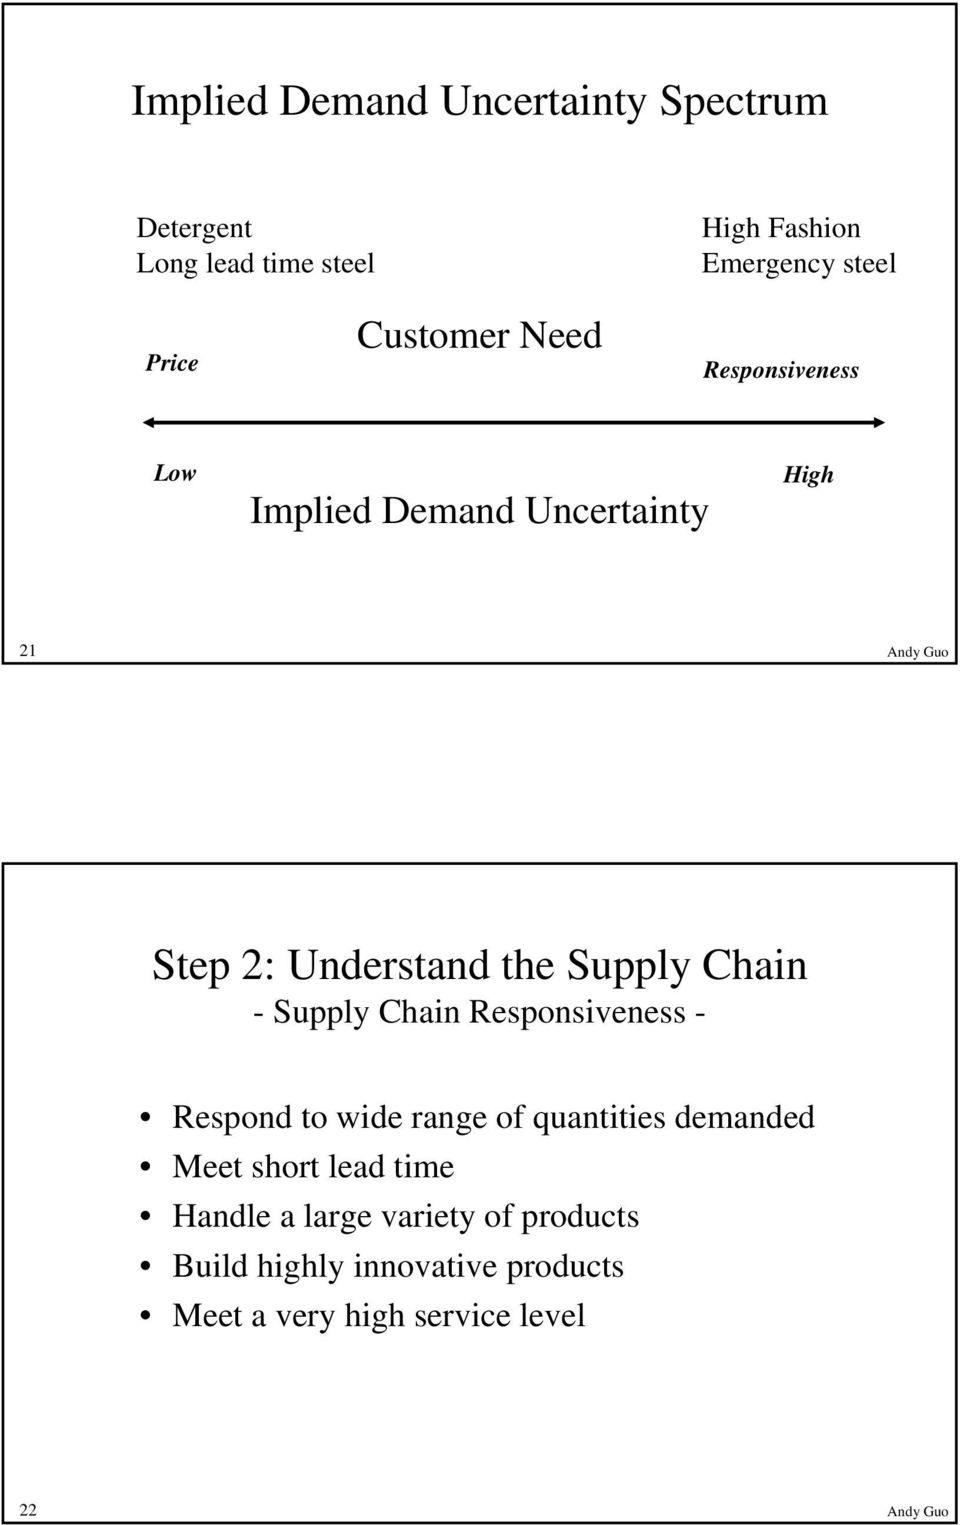 Supply Chain - Supply Chain Responsiveness - Respond to wide range of quantities demanded Meet short lead